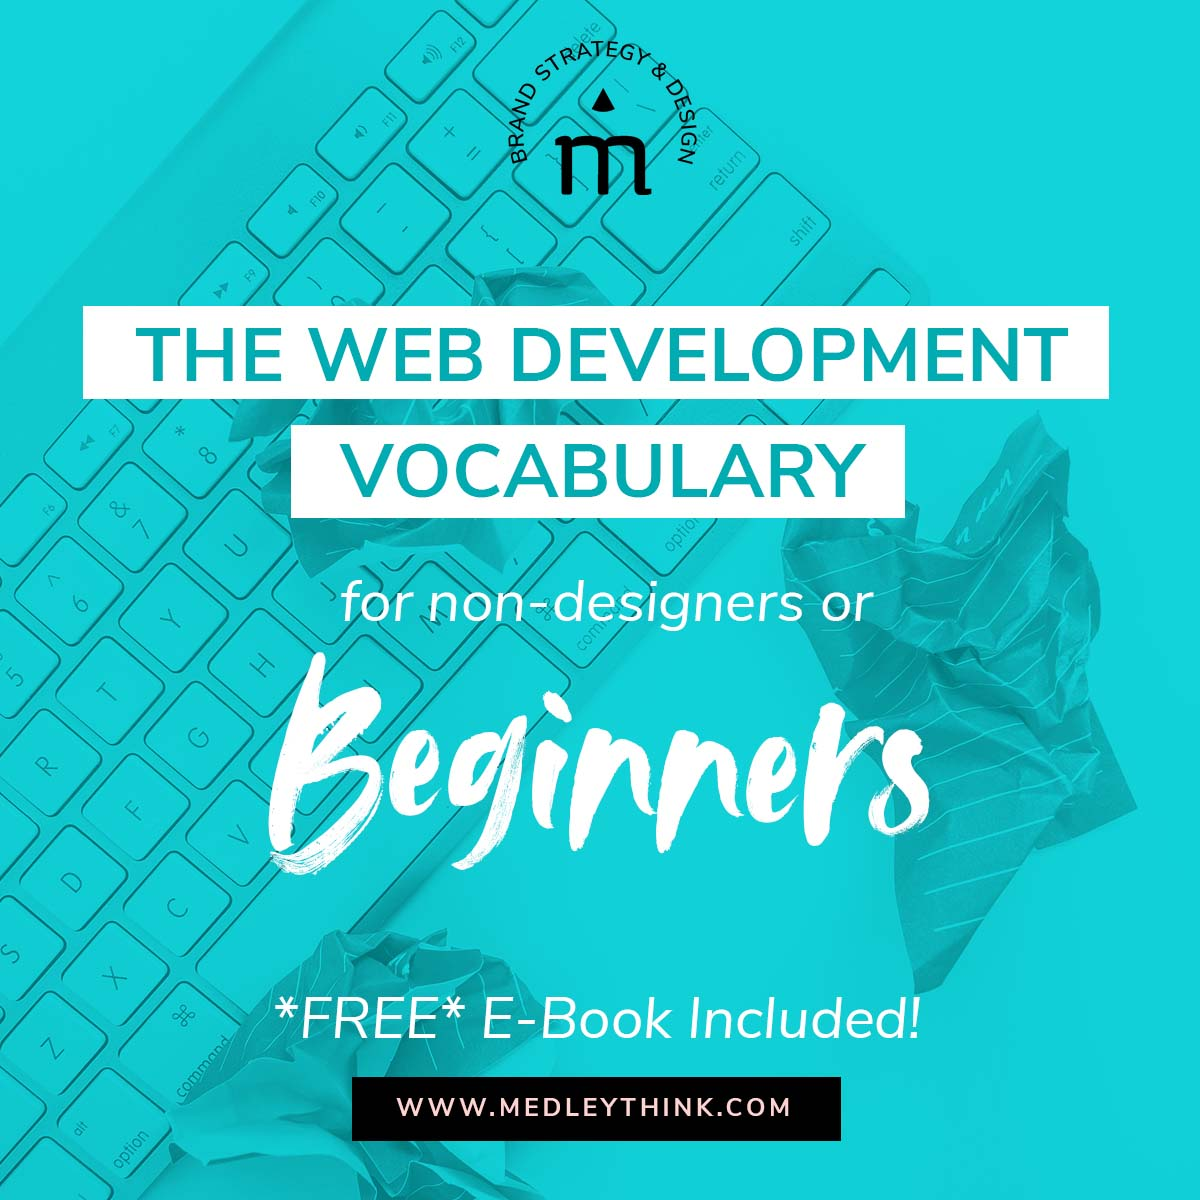 Are you DIYing your website or working with a designer/developer for the first time? We are here to help! Learn the web development lingo and download our *FREE* e-book! #webdevelopment #webdite #webdesign #diywebsite